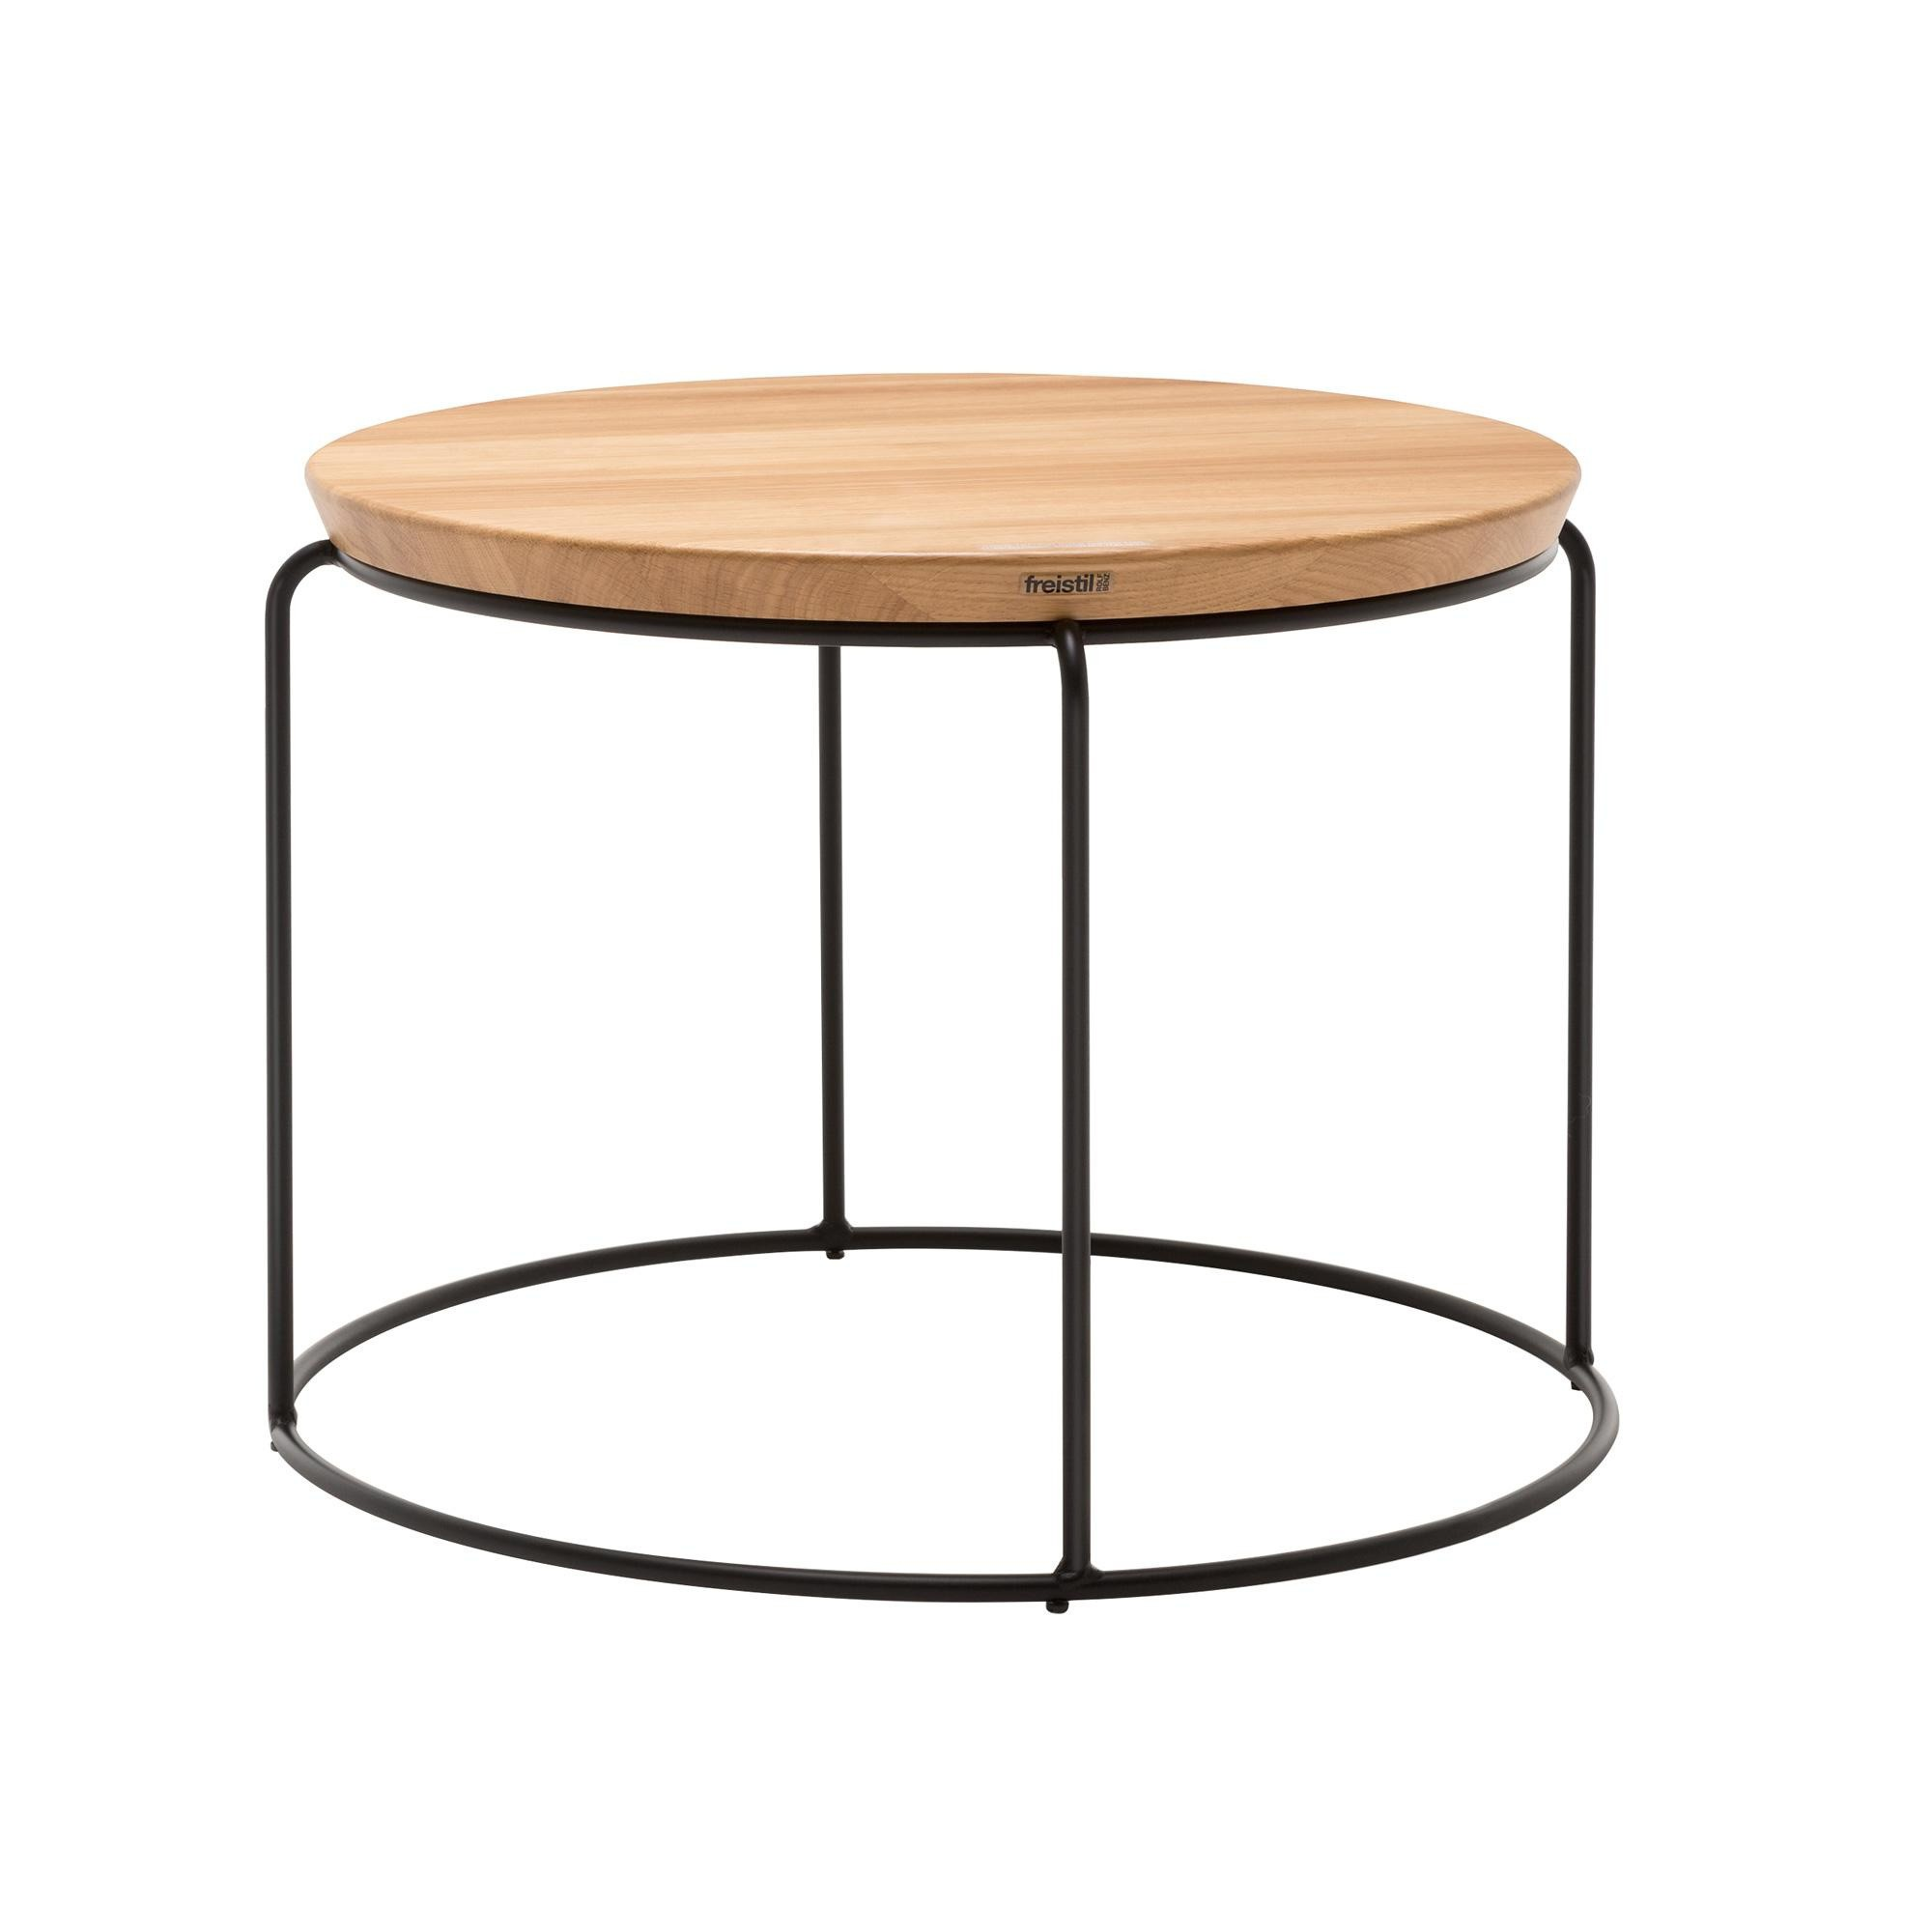 Freistil Rolf Benz Freistil 151 Coffee Table Round Ambientedirect